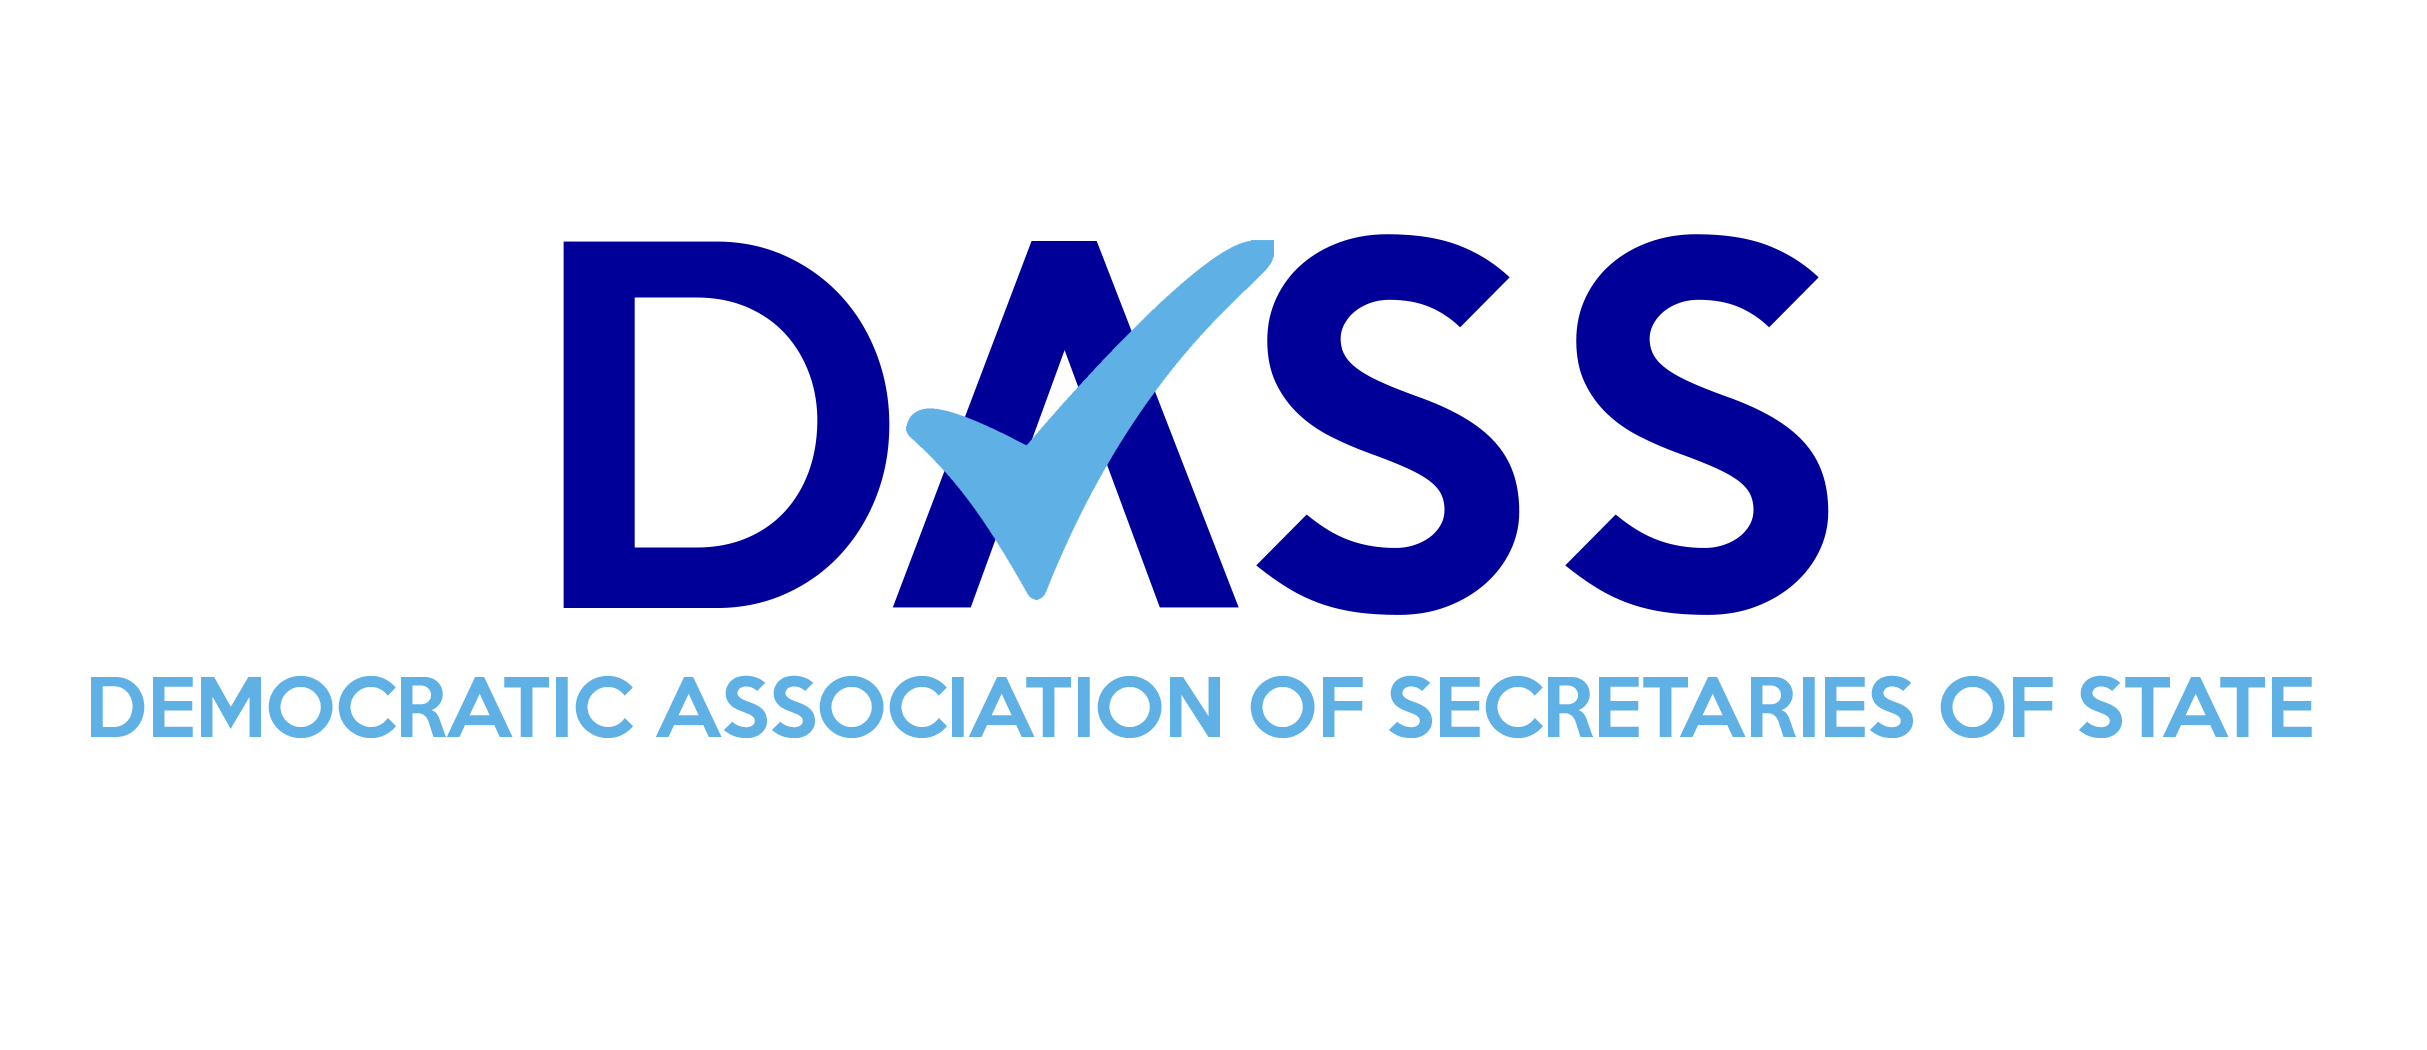 Democratic Association of Secretaries of State